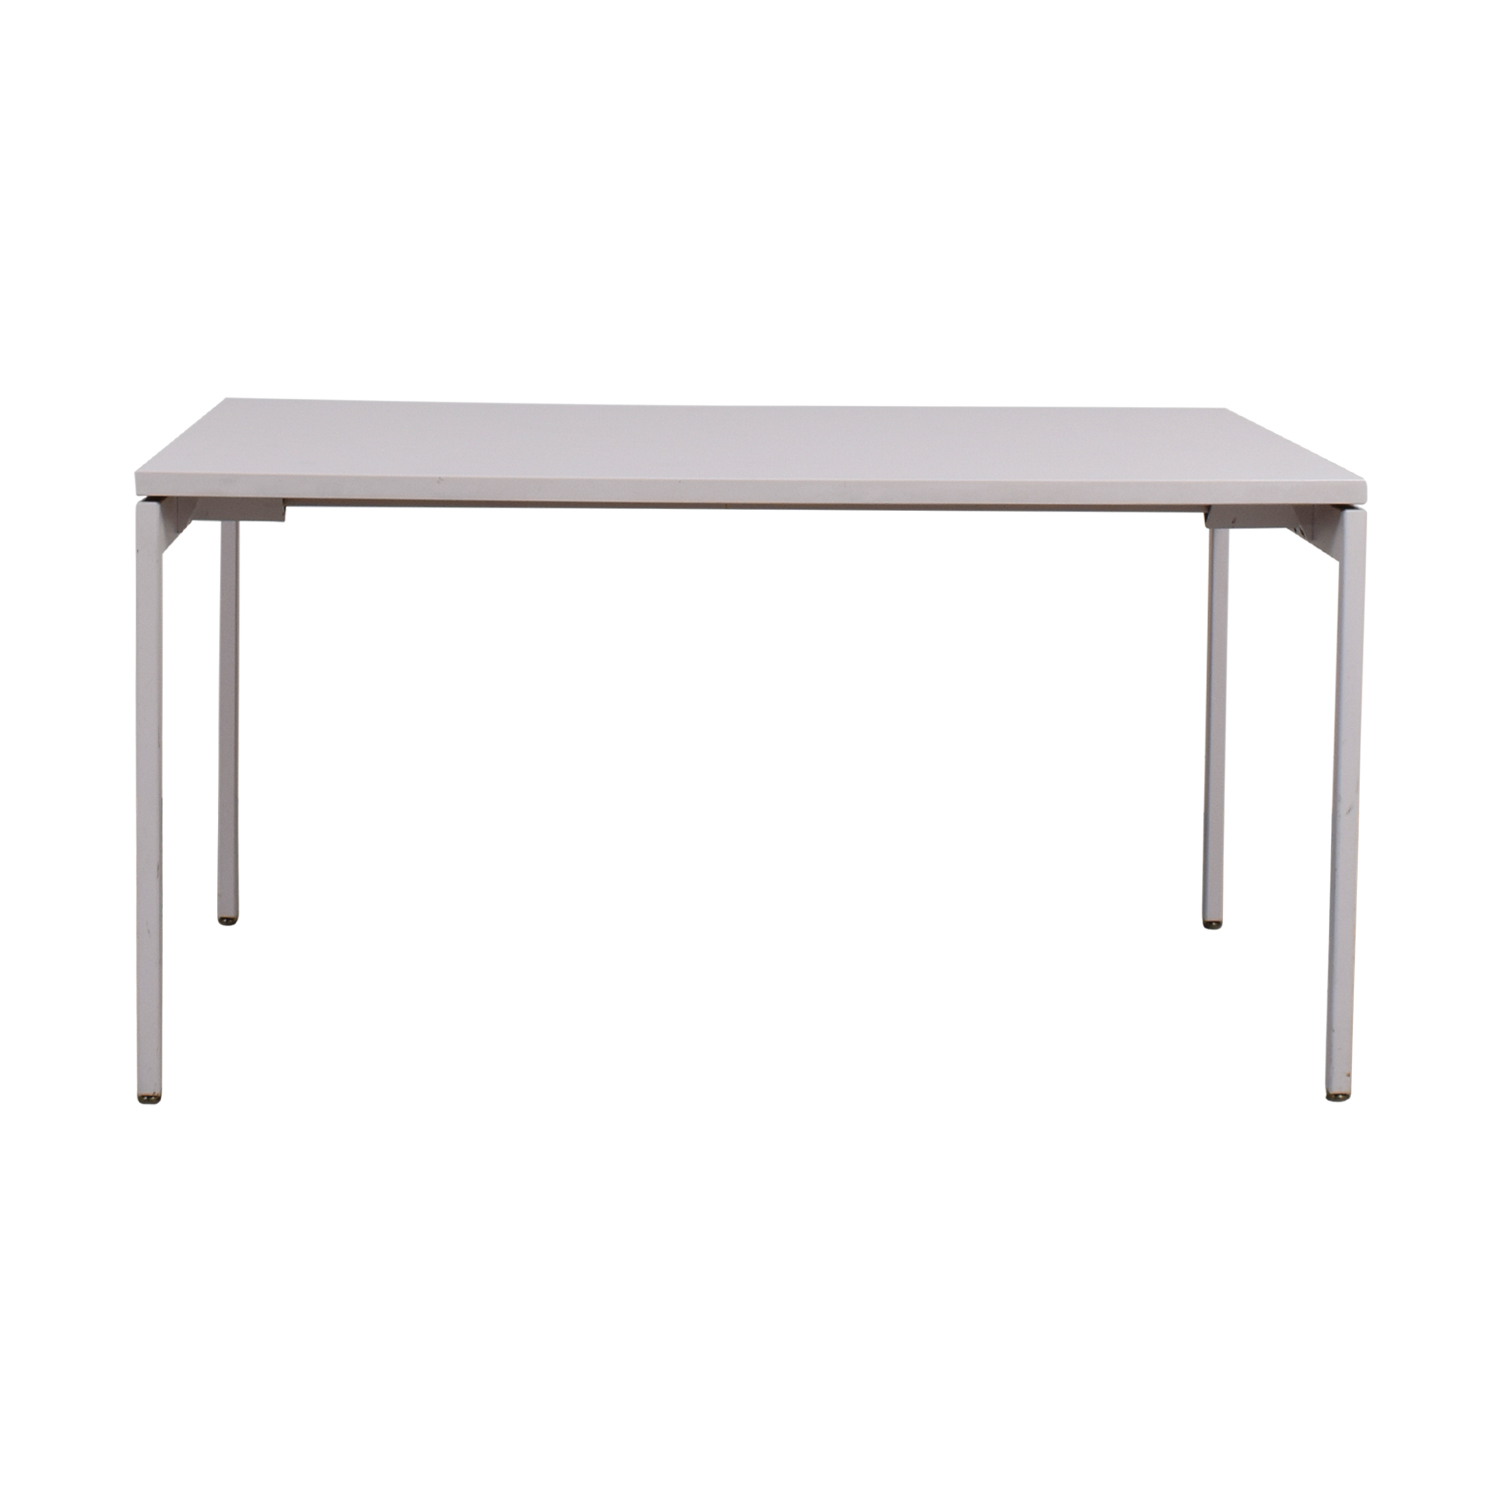 Knoll Knoll White Desk dimensions